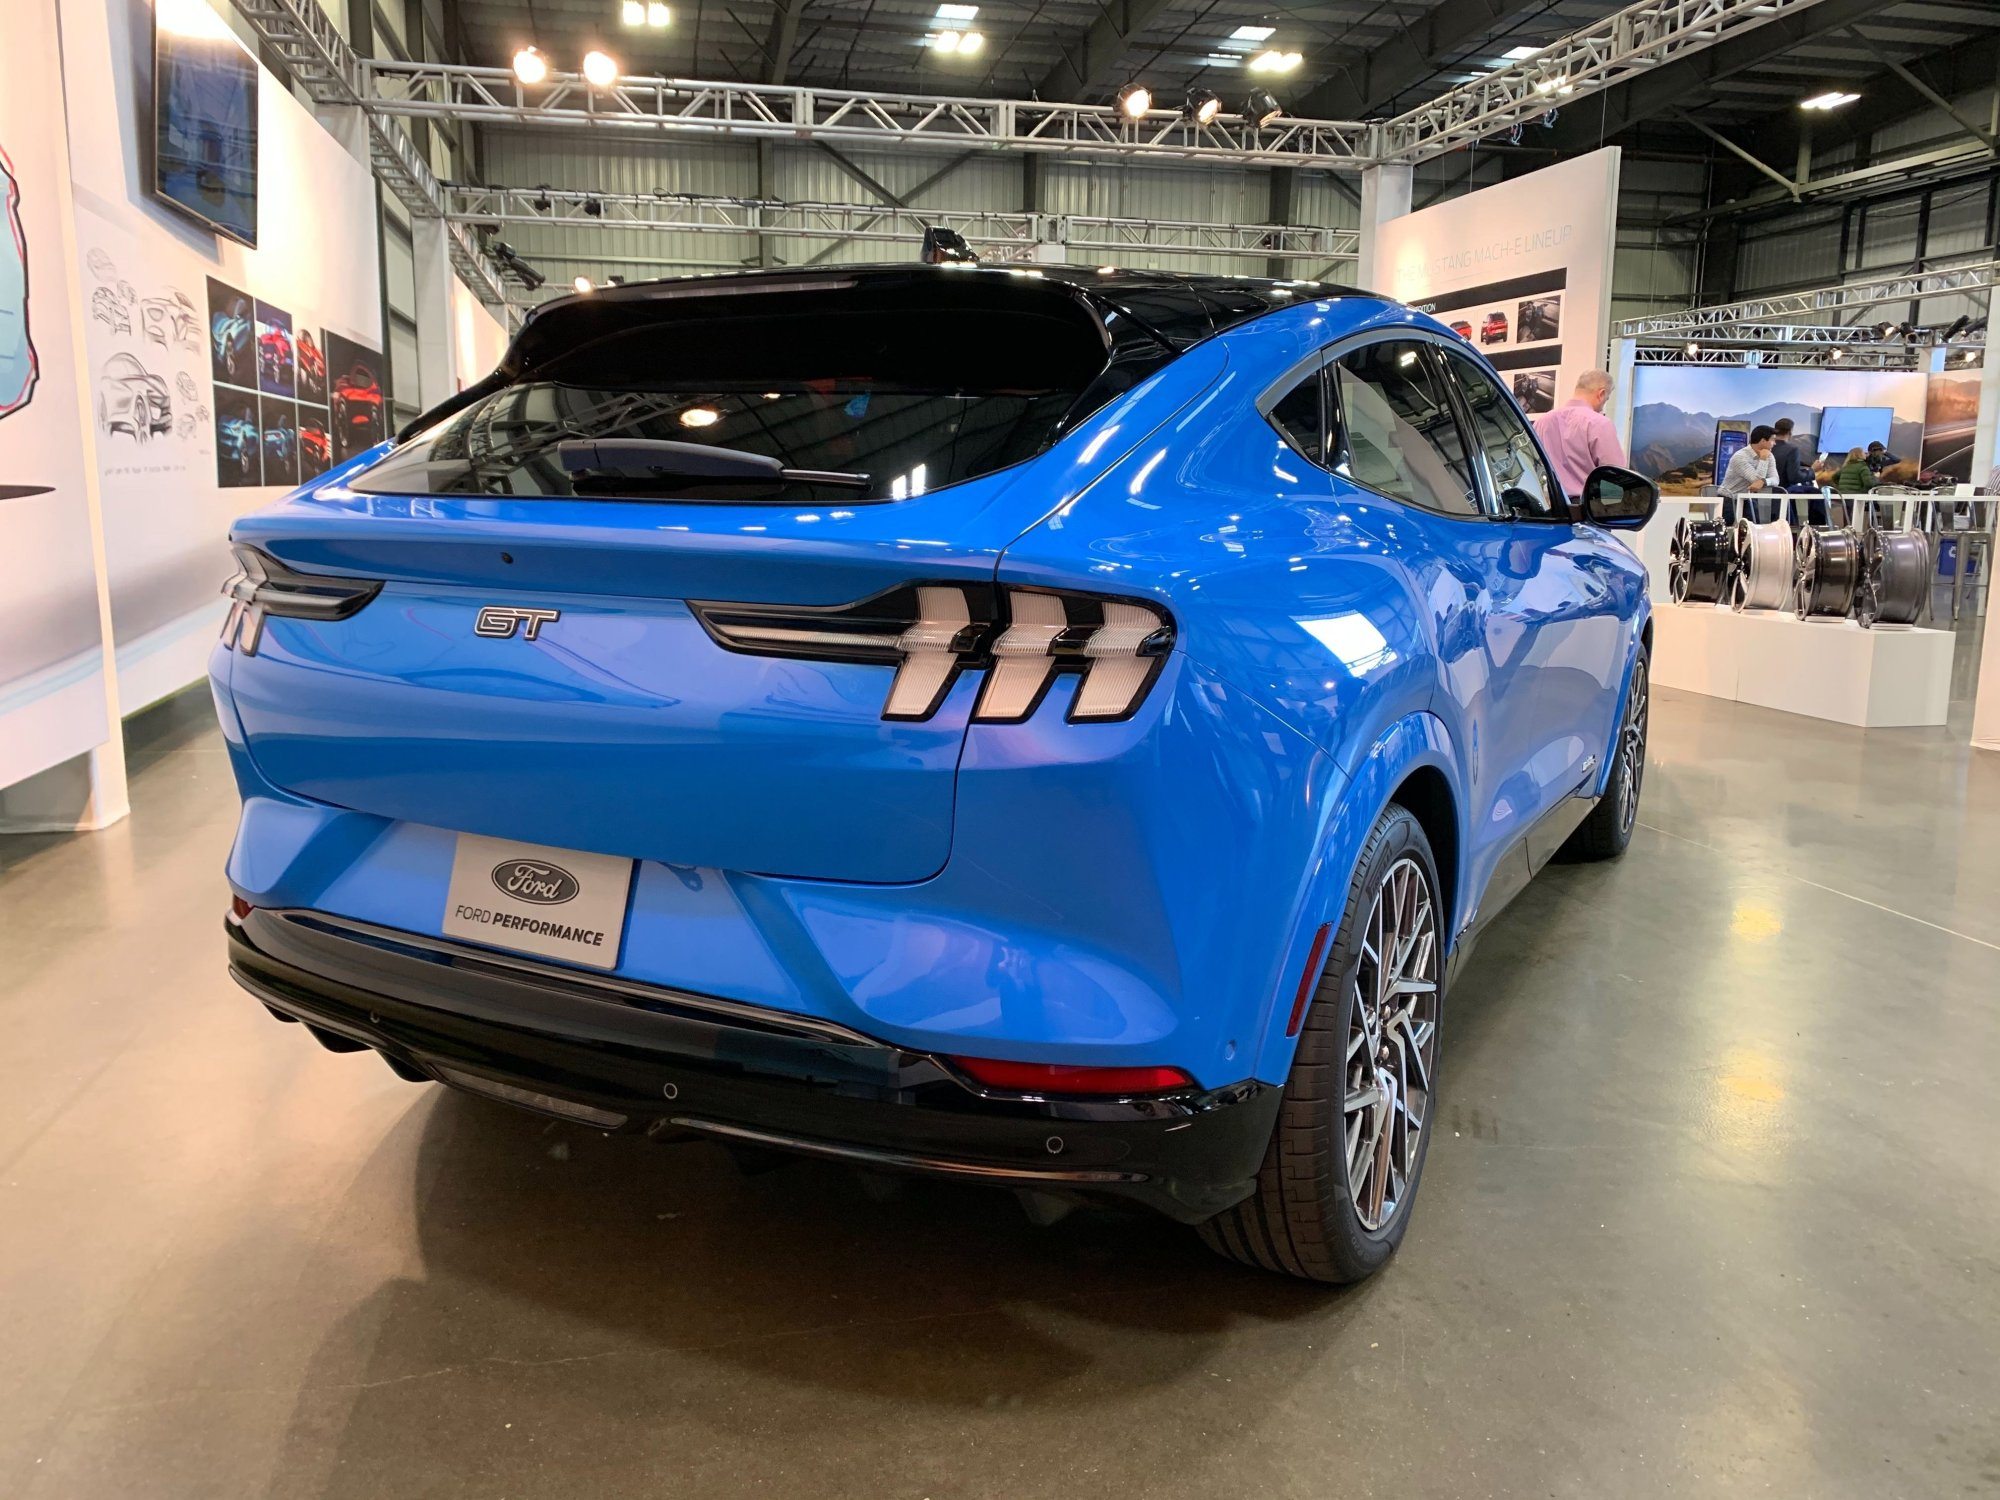 The Ford Mustang Mach-E's taillights are widely spread out to accentuate the crossover SUV's width.